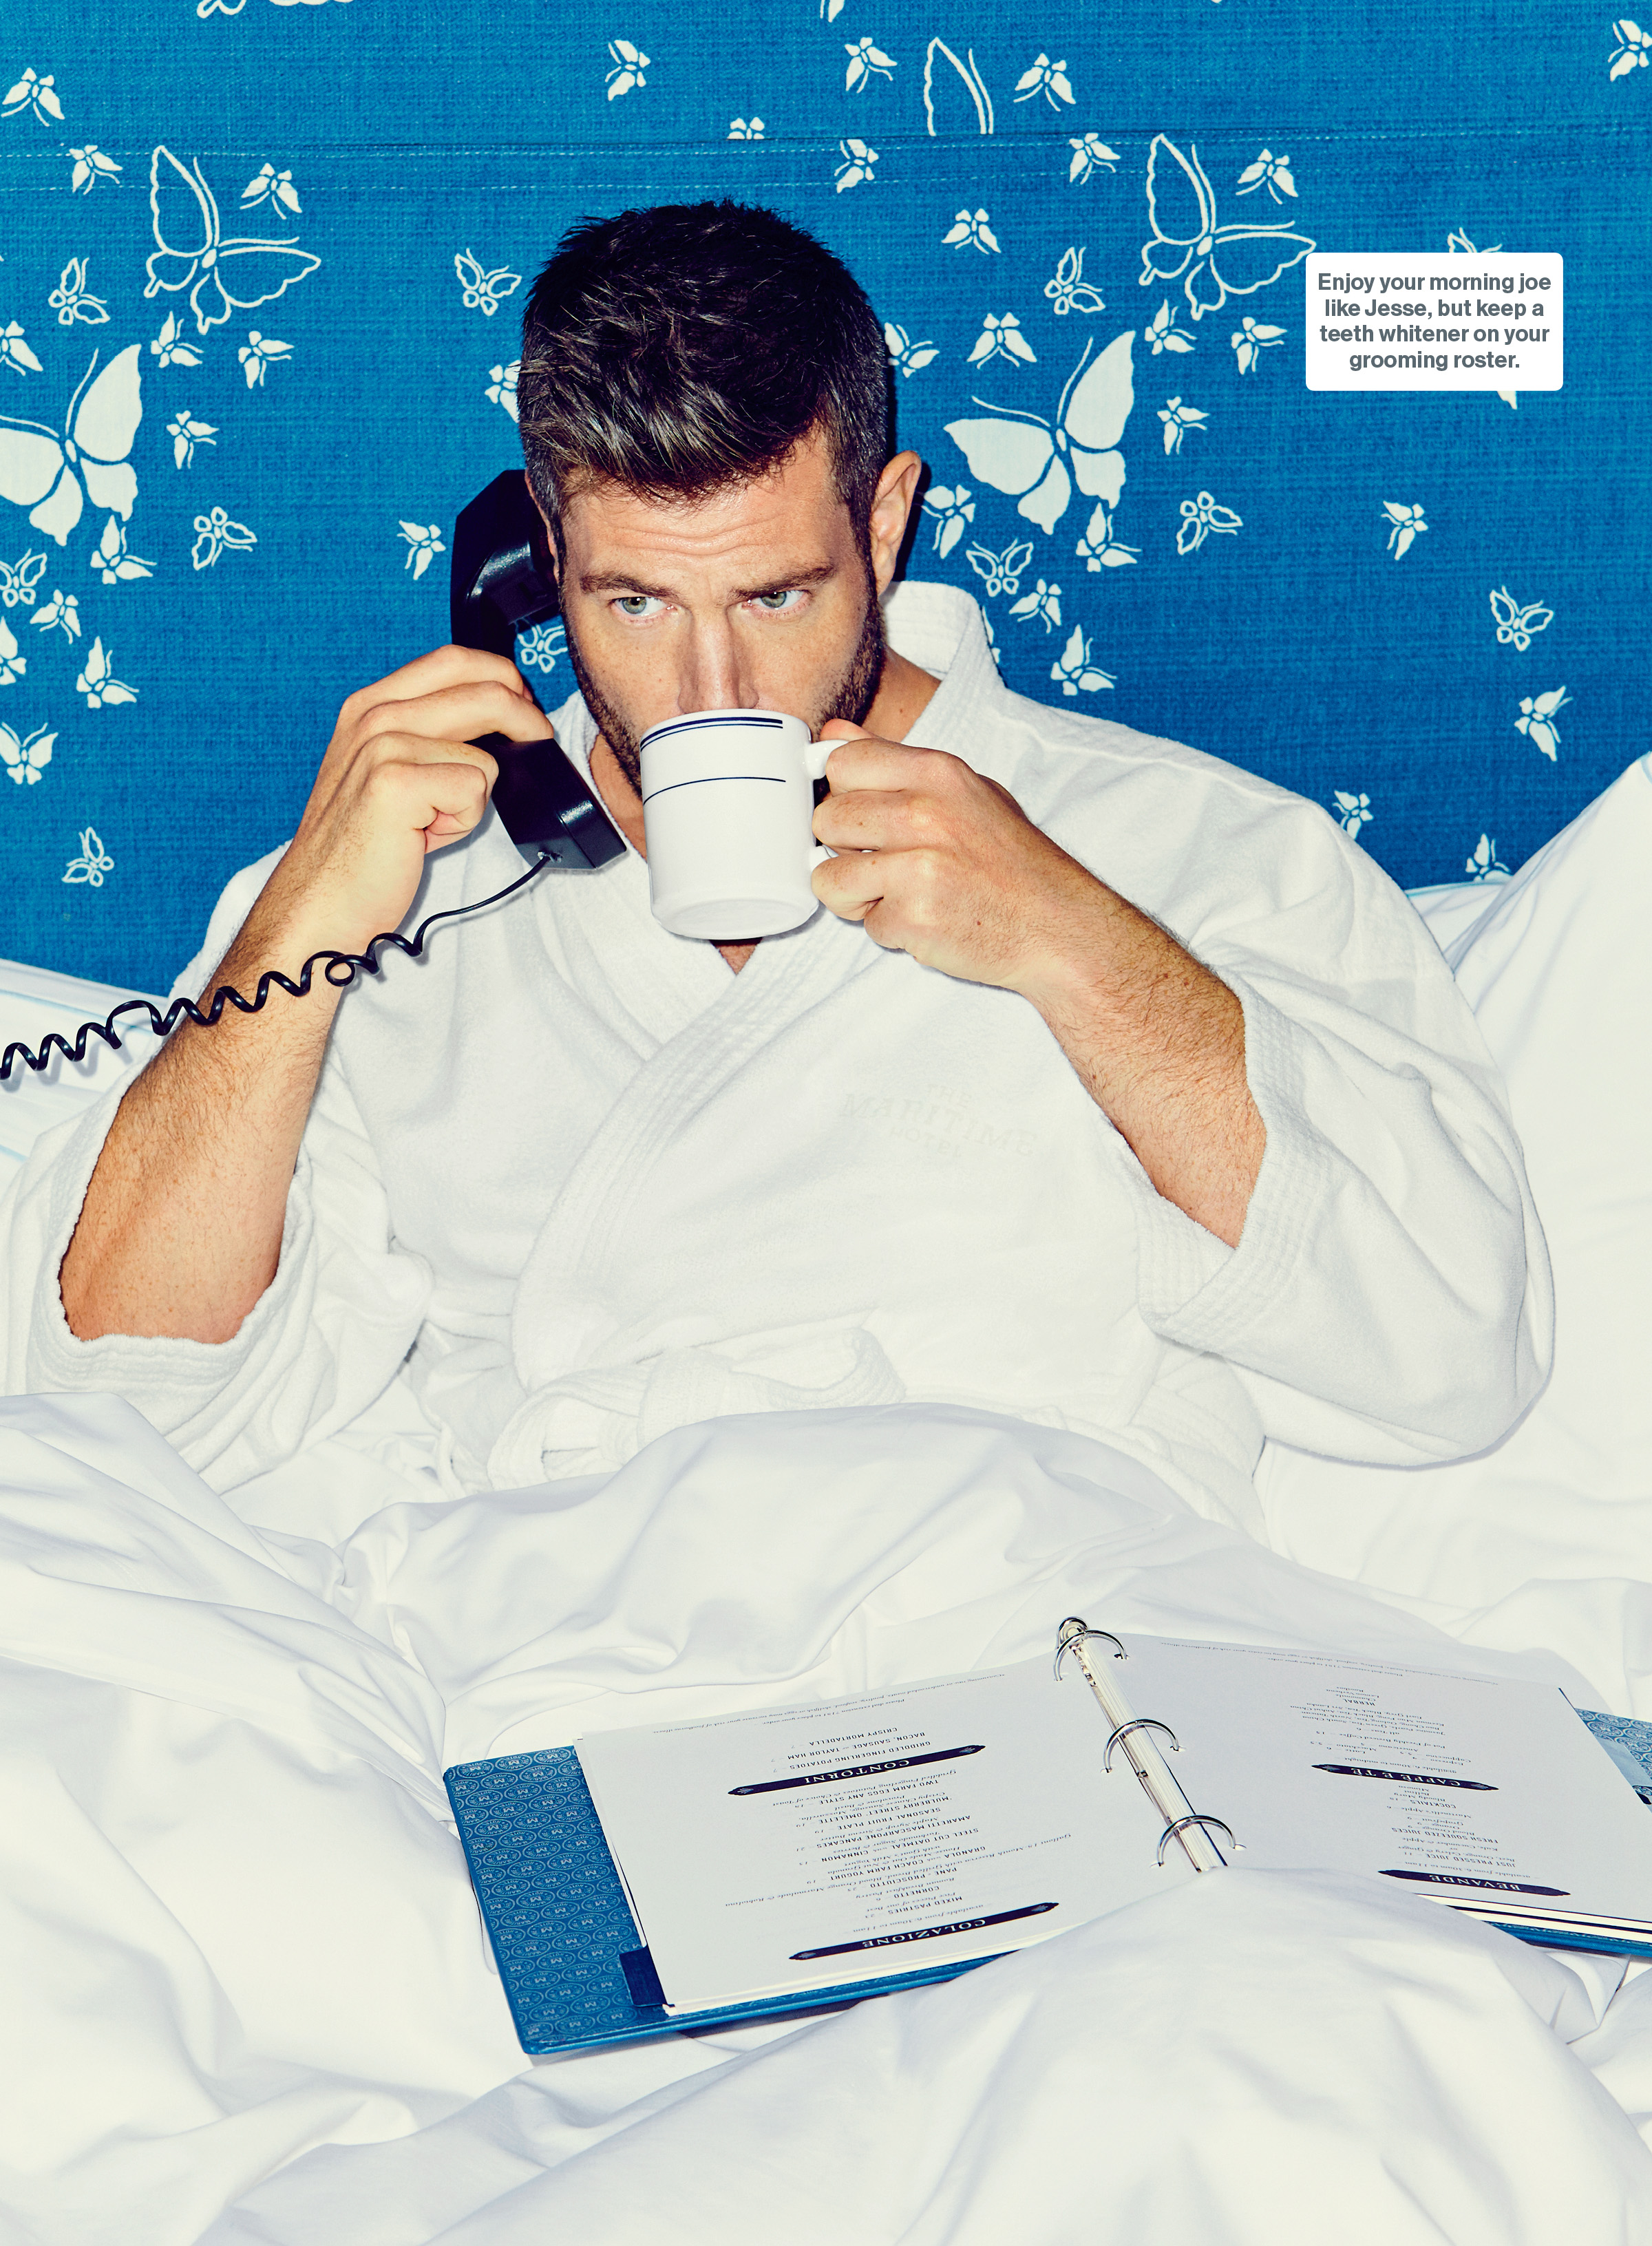 MH Grooming Awards Presented by Jesse Palmer